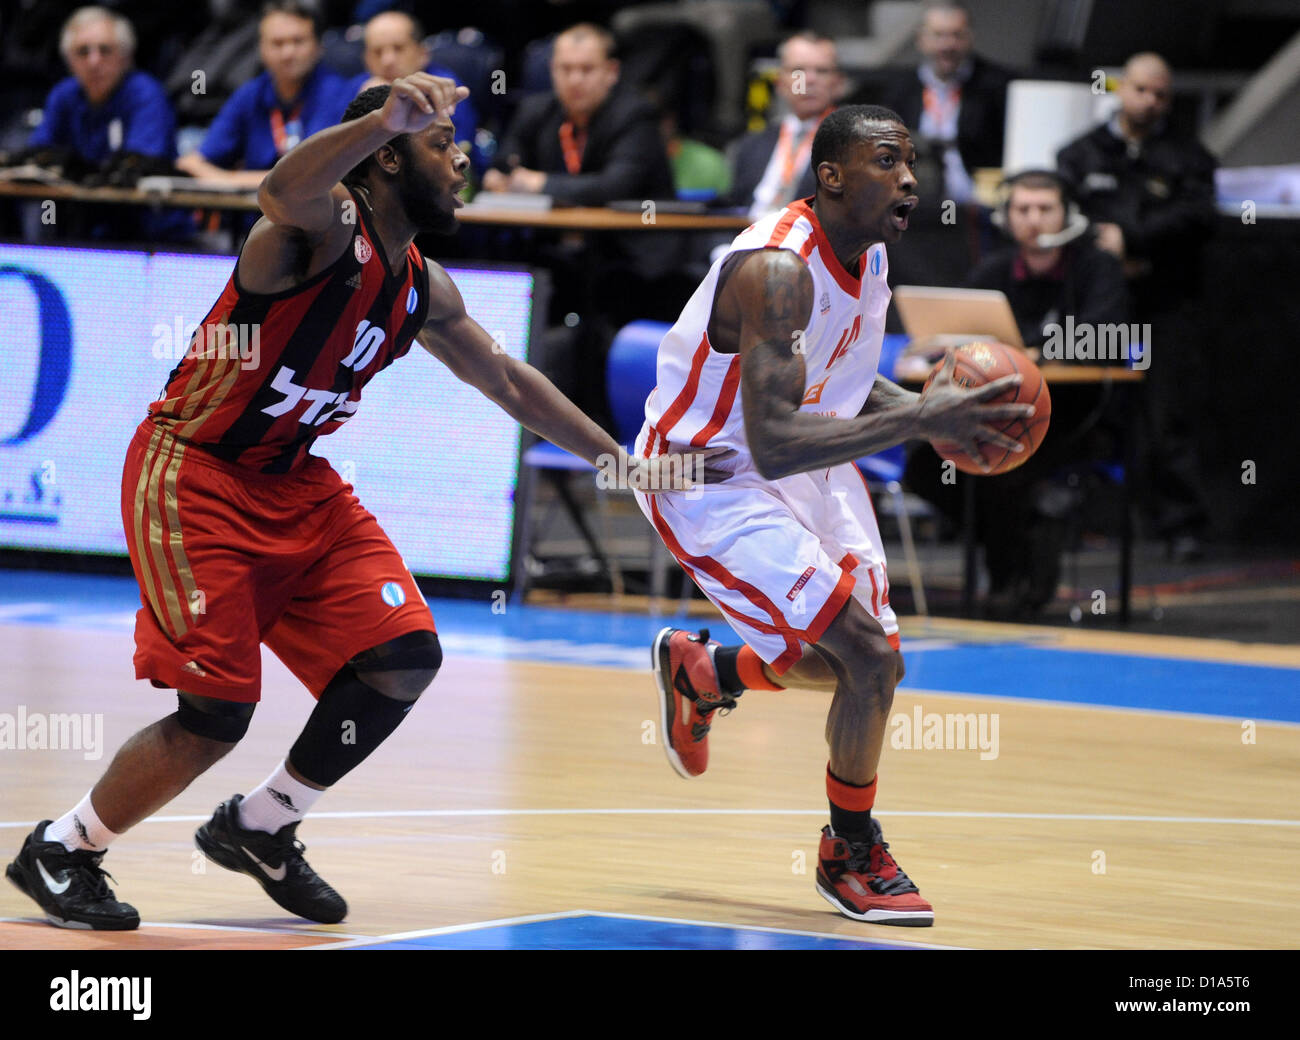 Pardubice, Czech Republic, December 12, 2012. Jacob Pullen (left) of Hapoel and Michael Taylor (right) of Nymburk - Stock Image